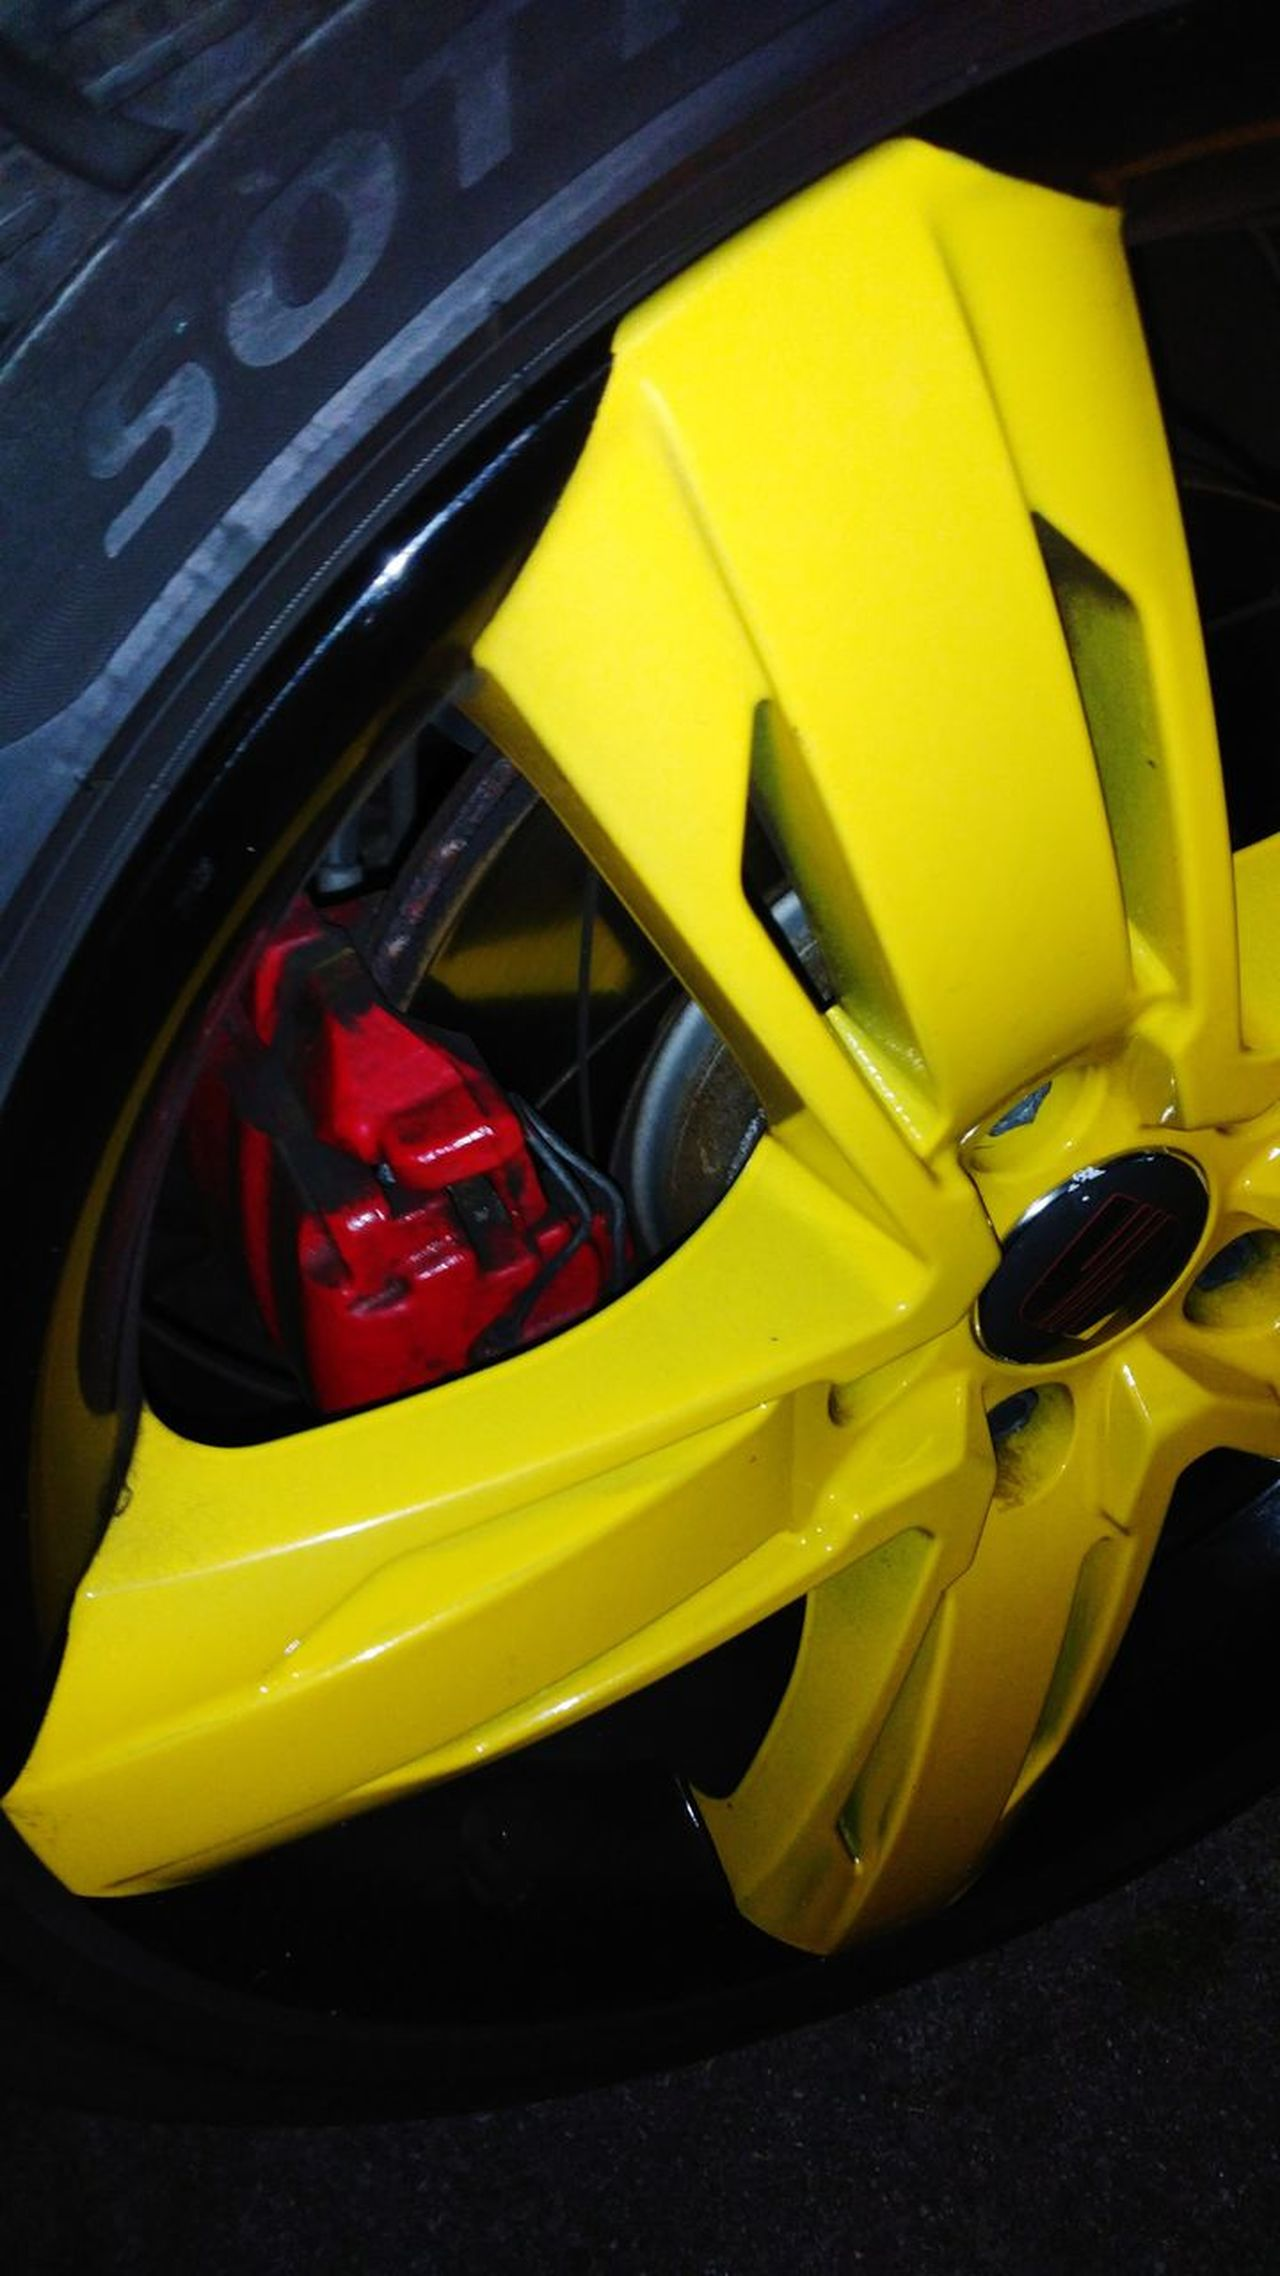 Yellow Car Transportation Mode Of Transport Multi Colored Motorsport Auto Racing No People Close-up BYOPaper! The Street Photographer - 2017 EyeEm Awards Live For The Story Cars Spazieren Und Fotografieren Red Color Reifen Weels Nightphotography Nightshot Nachtfotografie Nachtaufnahme Nachts